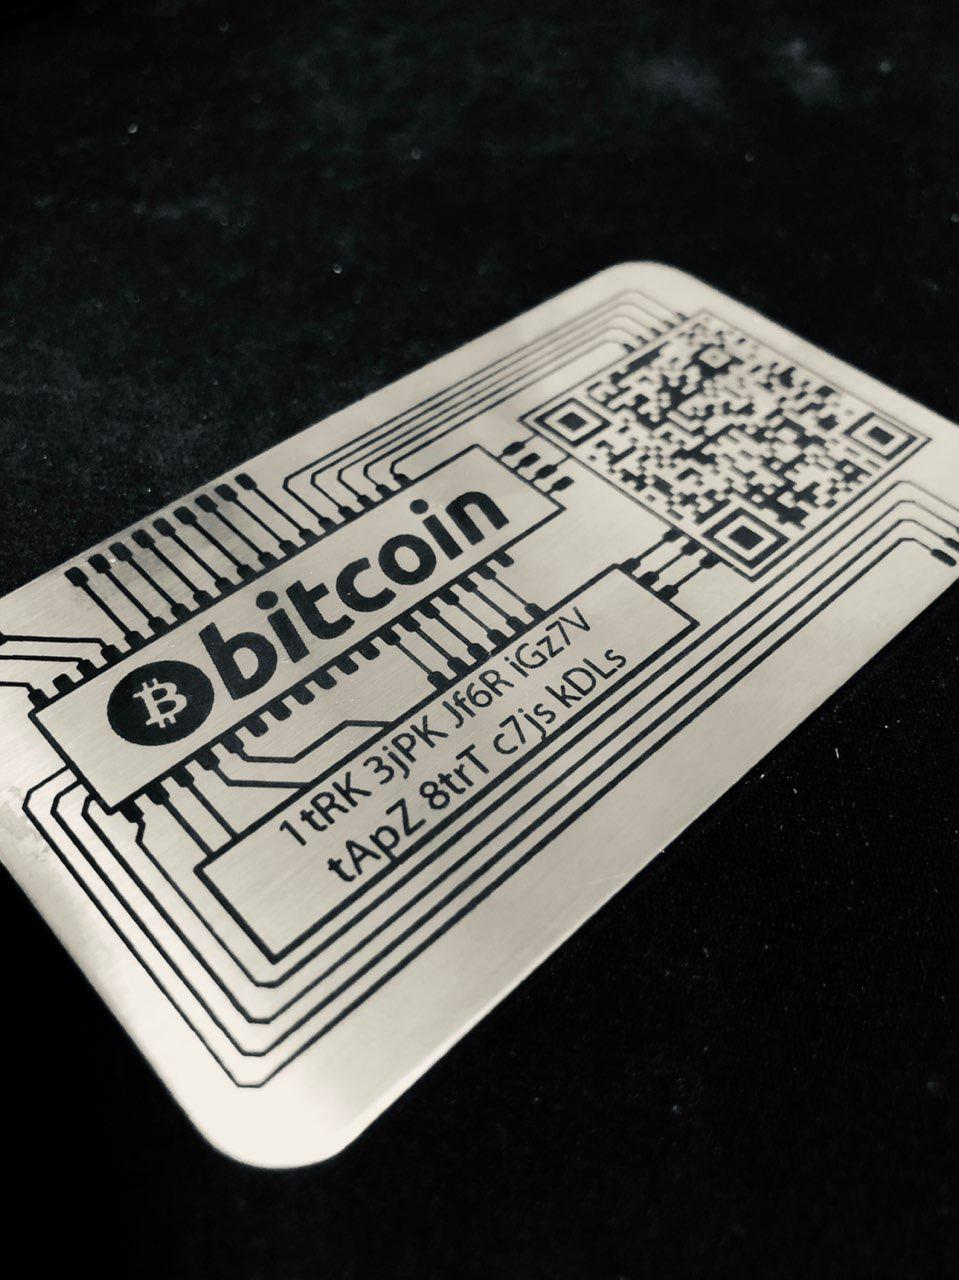 Best Bitcoin Wallet – How to Securely Store Bitcoin with Software, Apps and Hardware